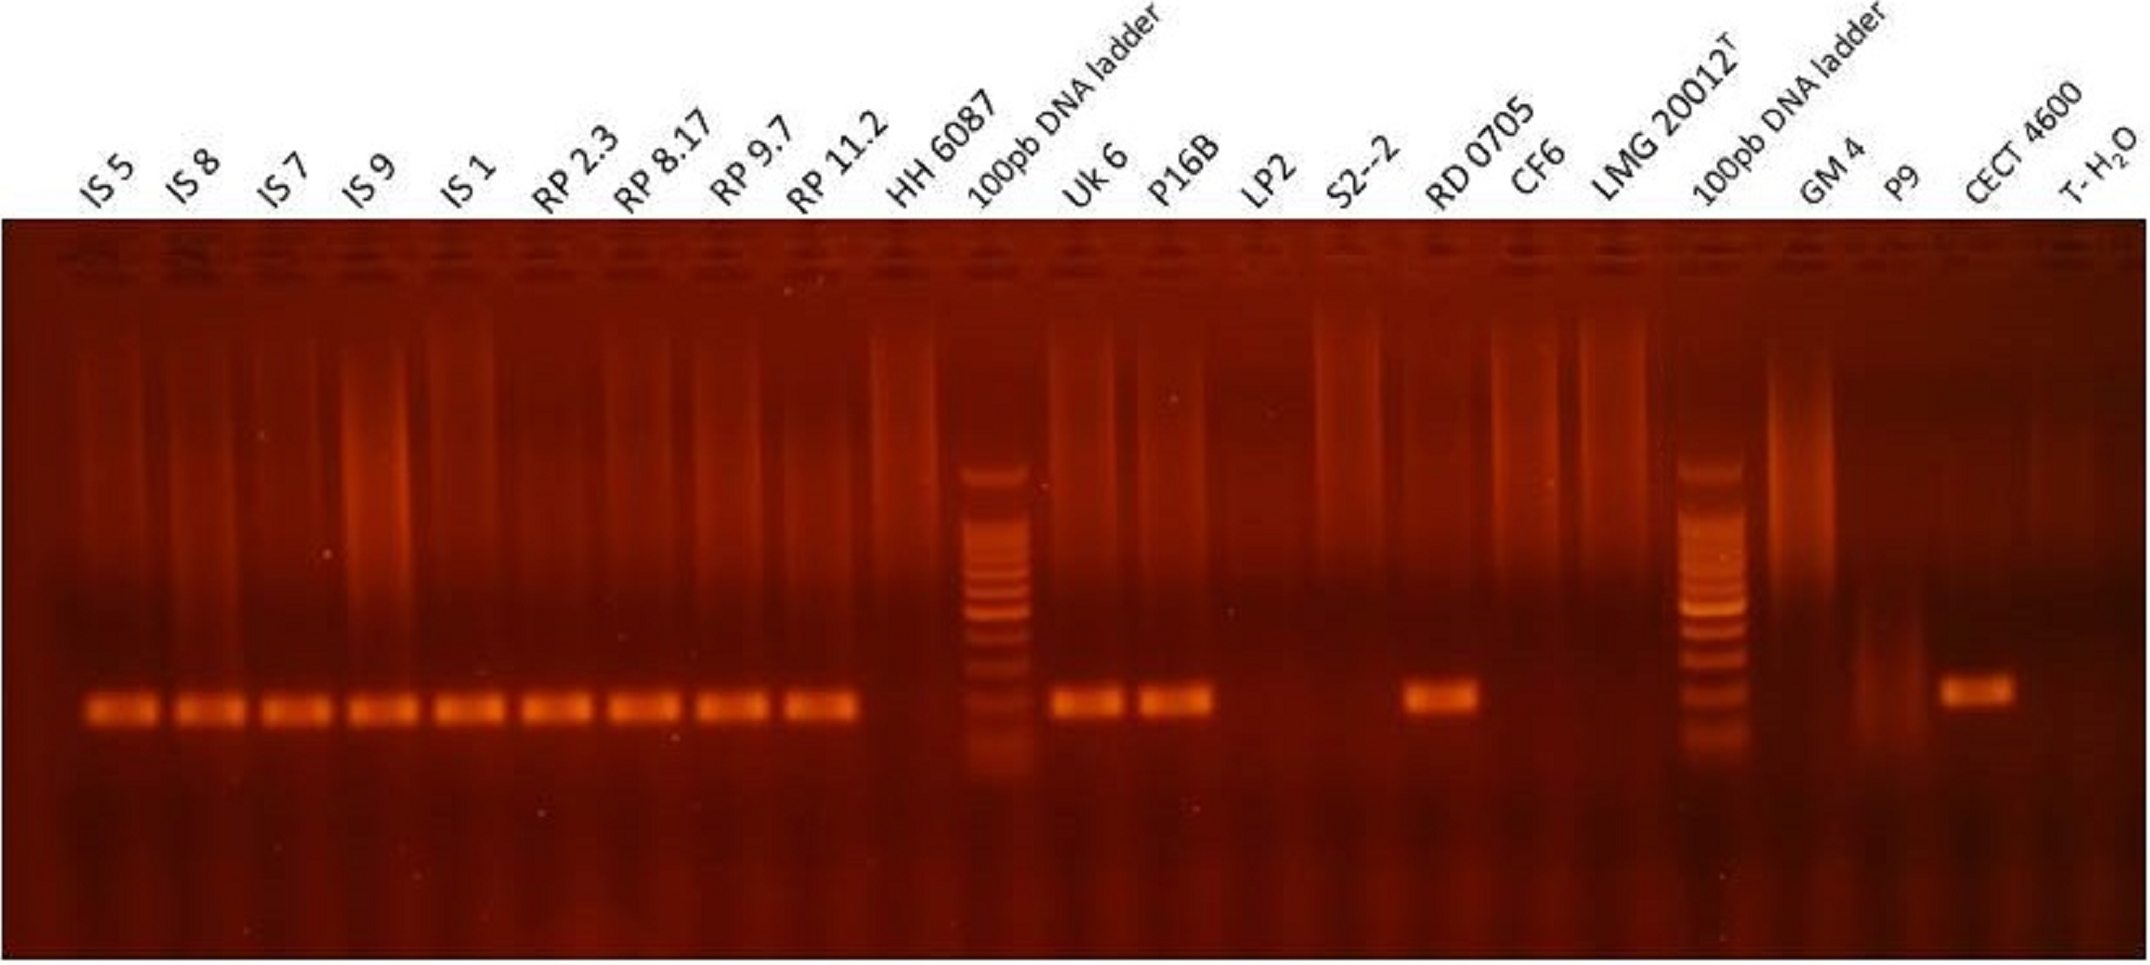 Development of a Taqman real time PCR assay for rapid detection and